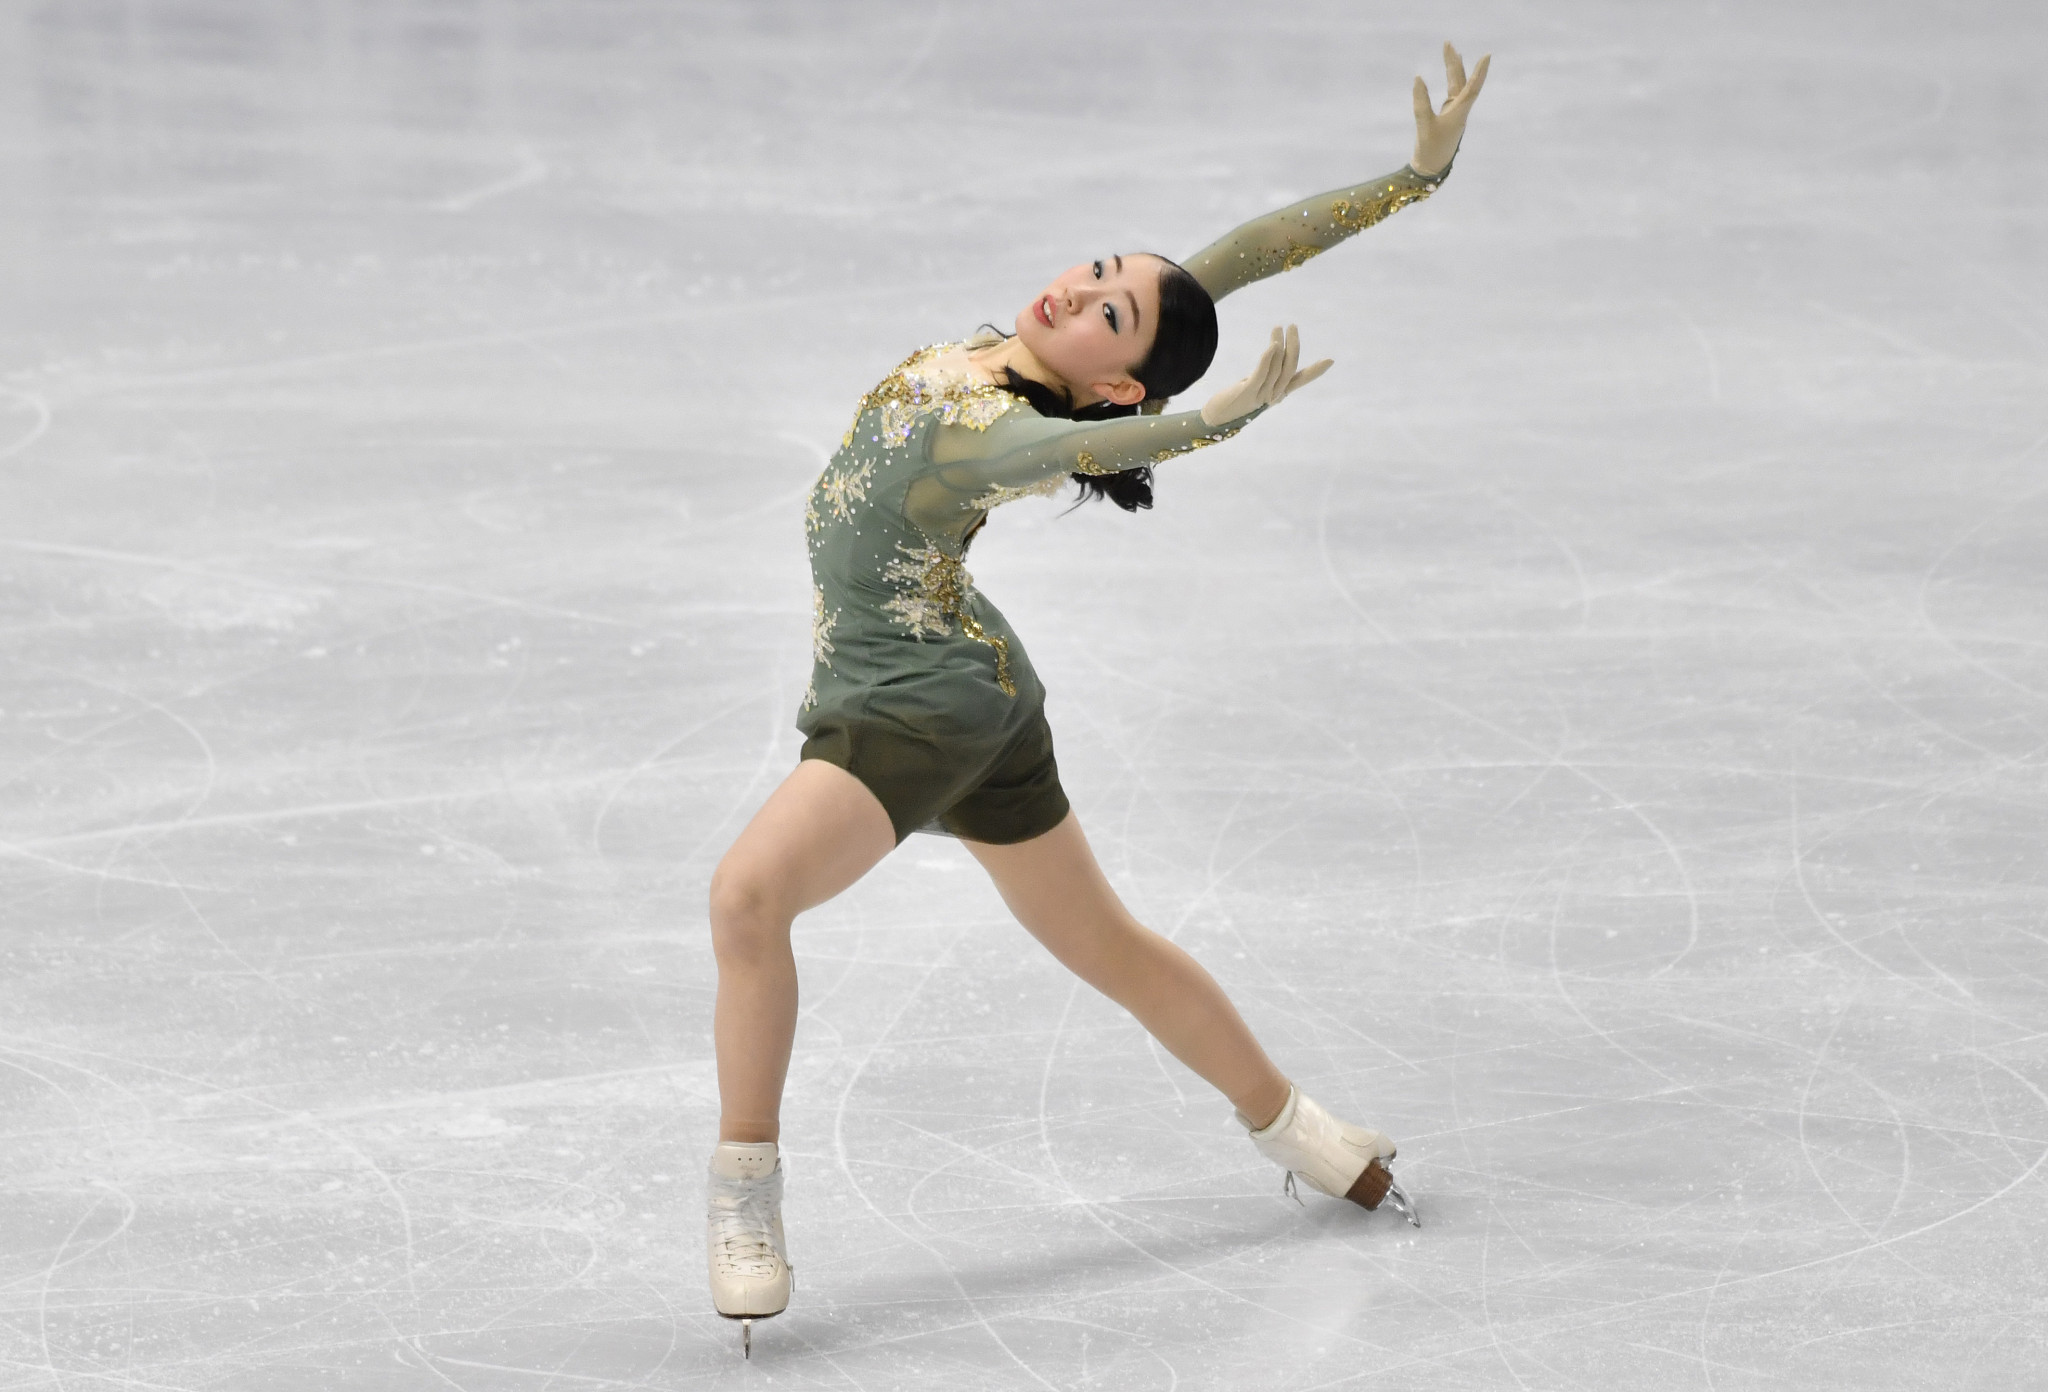 Japanese teenage prodigy Kihara defends Four Continents Figure Skating Championships